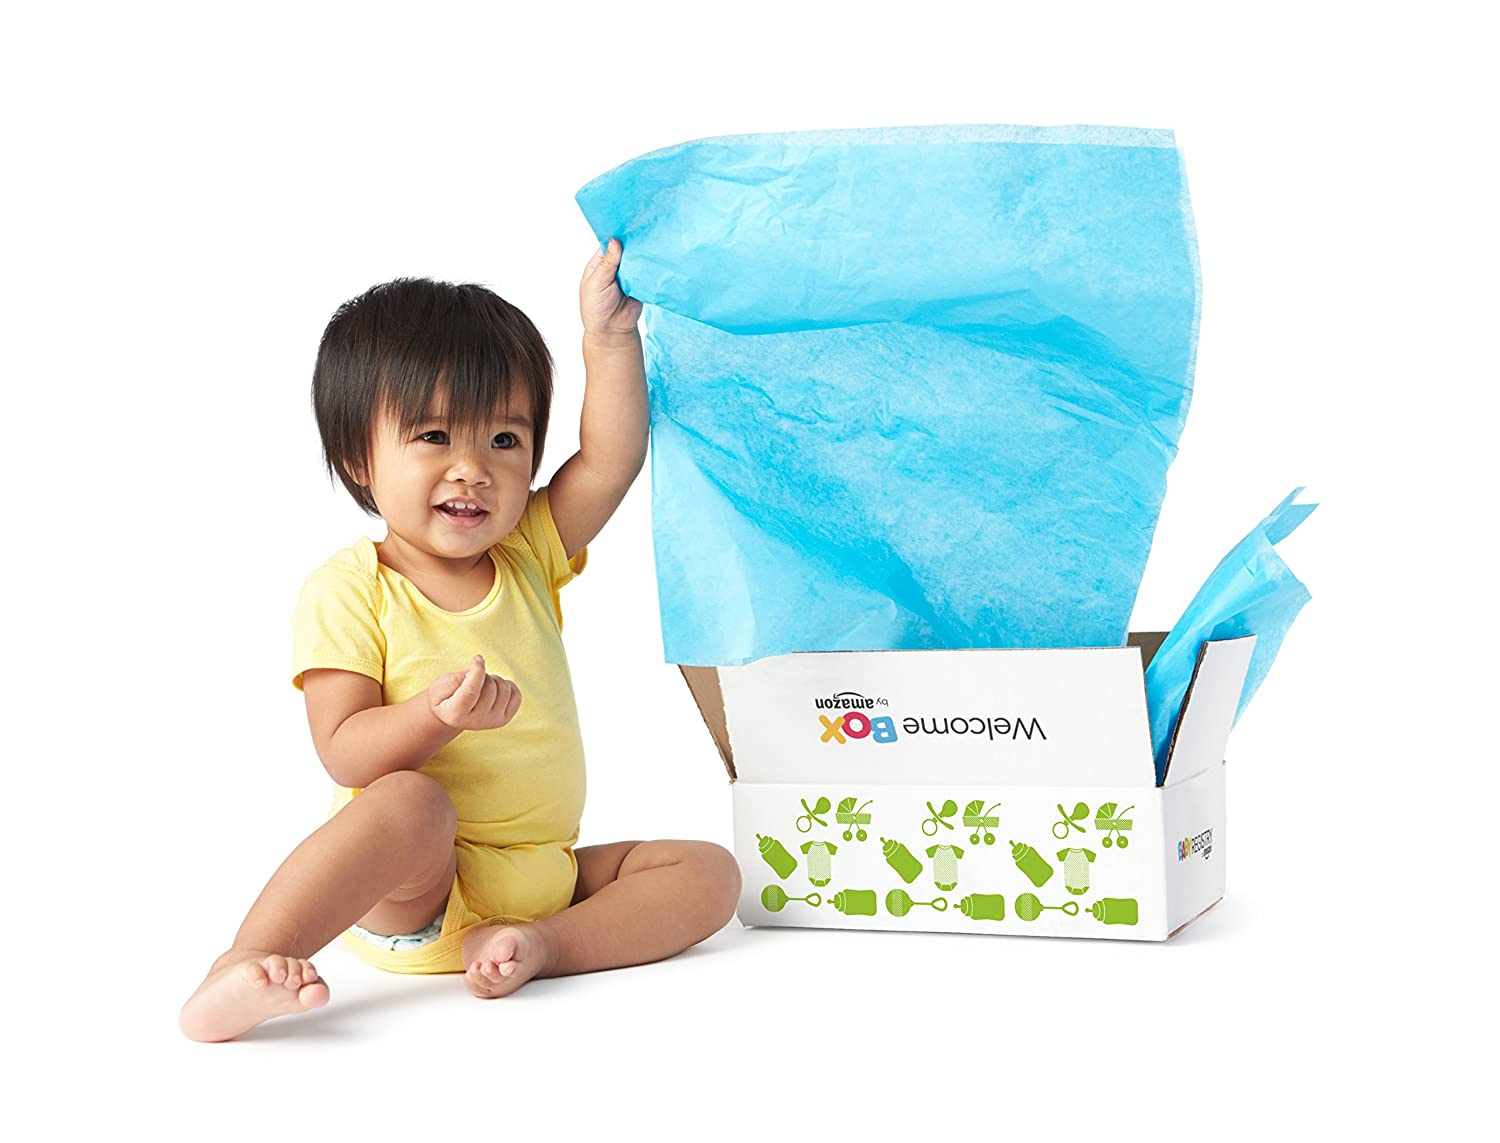 Amazon.com: Baby Registry Welcome Box: Health & Personal Care